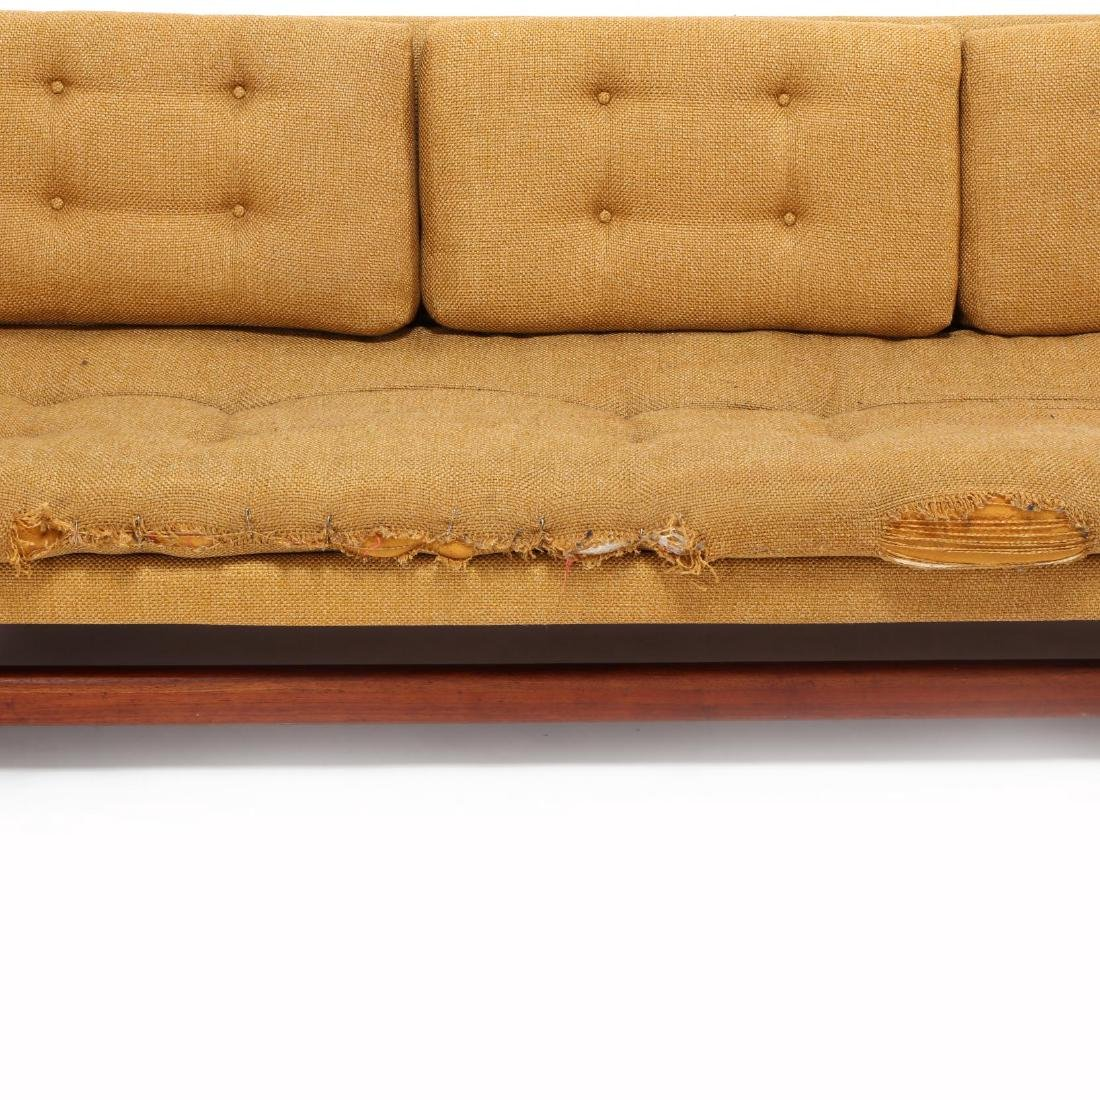 Adrian Persall, Streamlined Modernist Sofa - 3